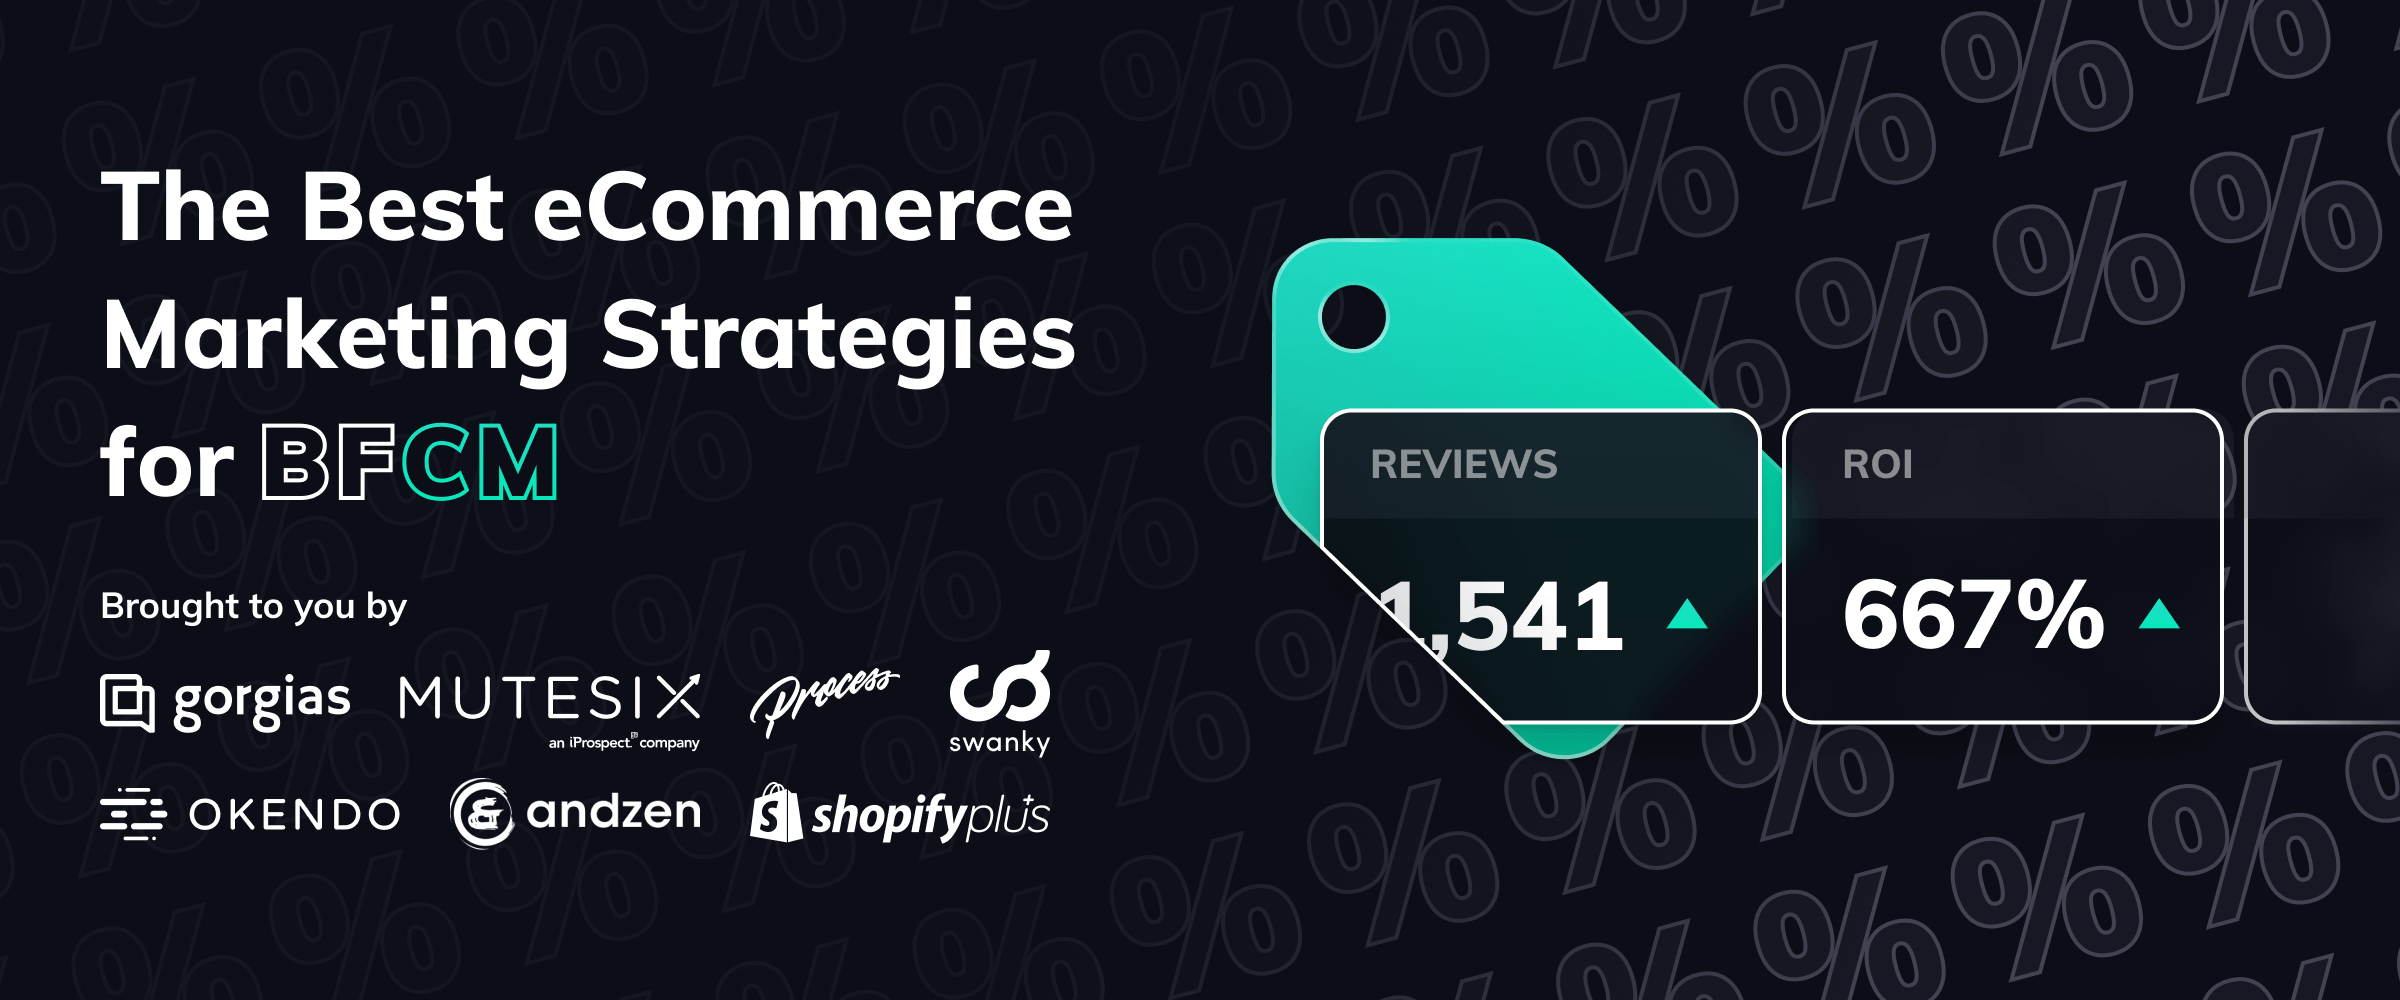 The Best eCommerce Marketing Strategies for BFCM from Shopify Experts cover image